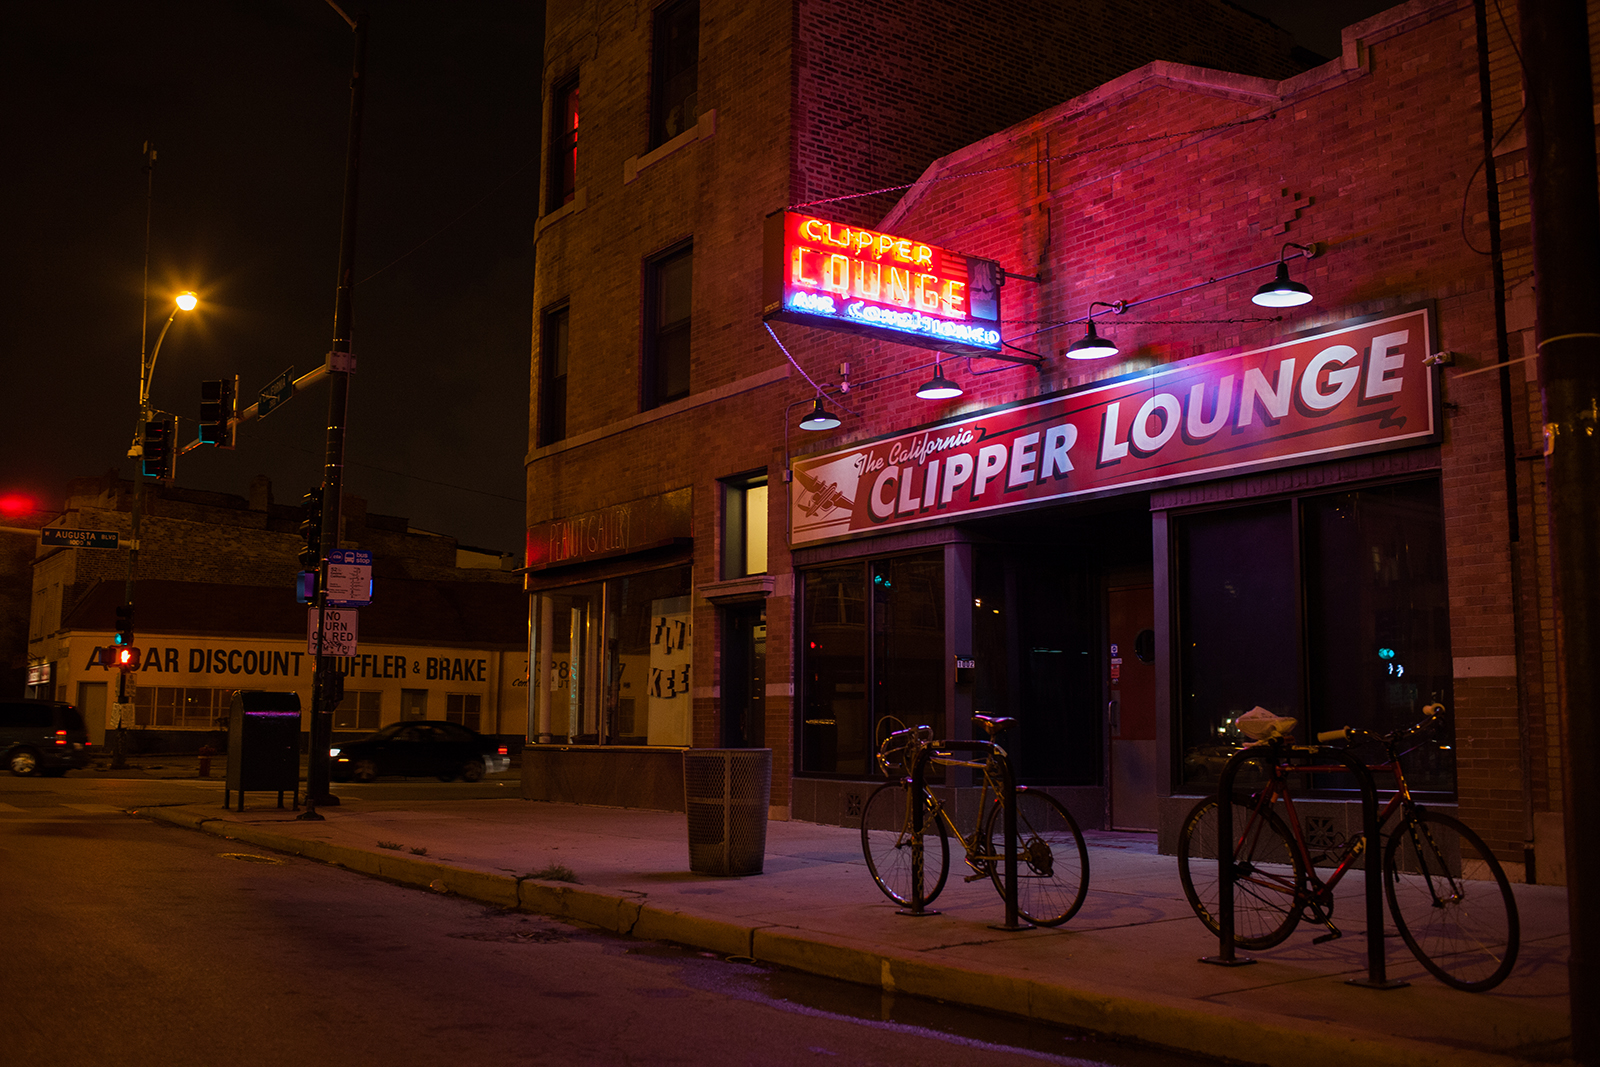 A night shot of a bar with a neon red sign and brick facade.